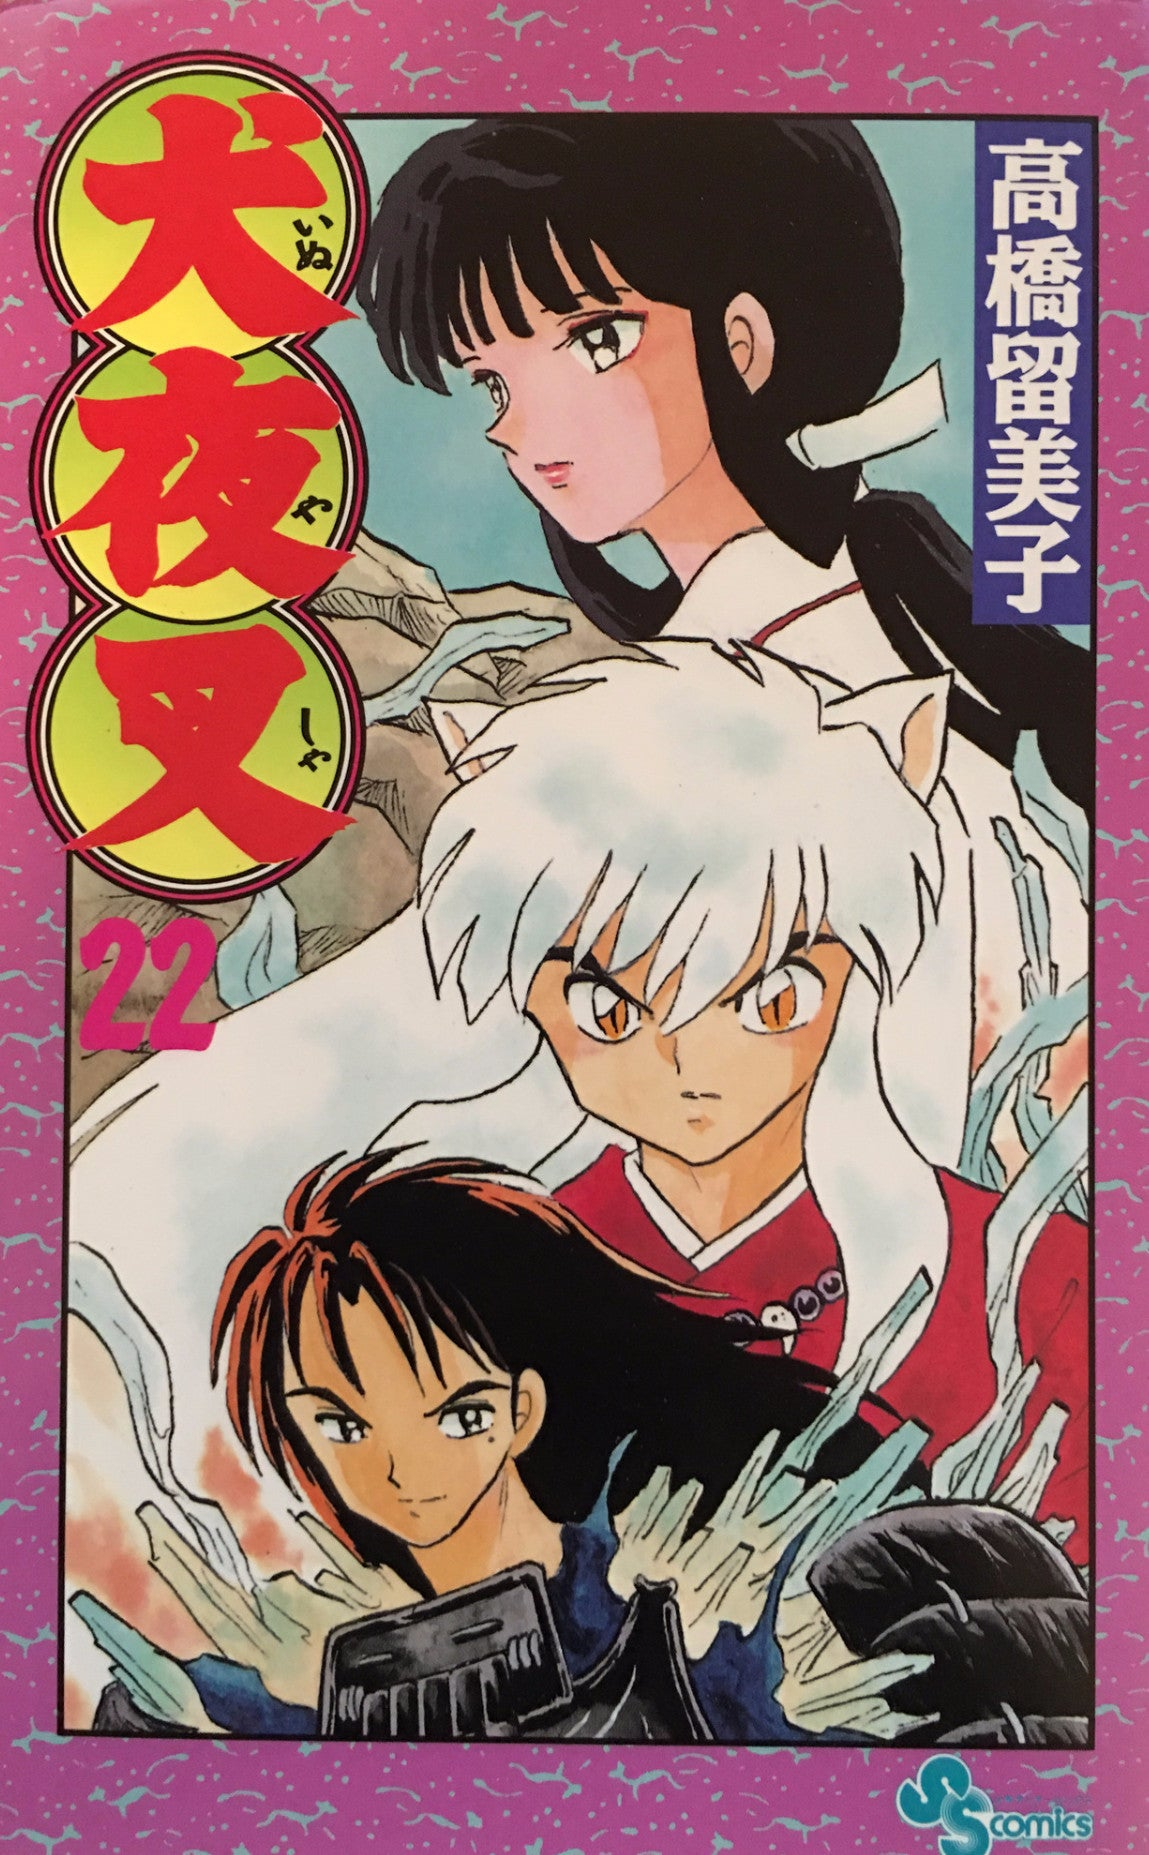 Inuyasha 22 - The Japan Shop